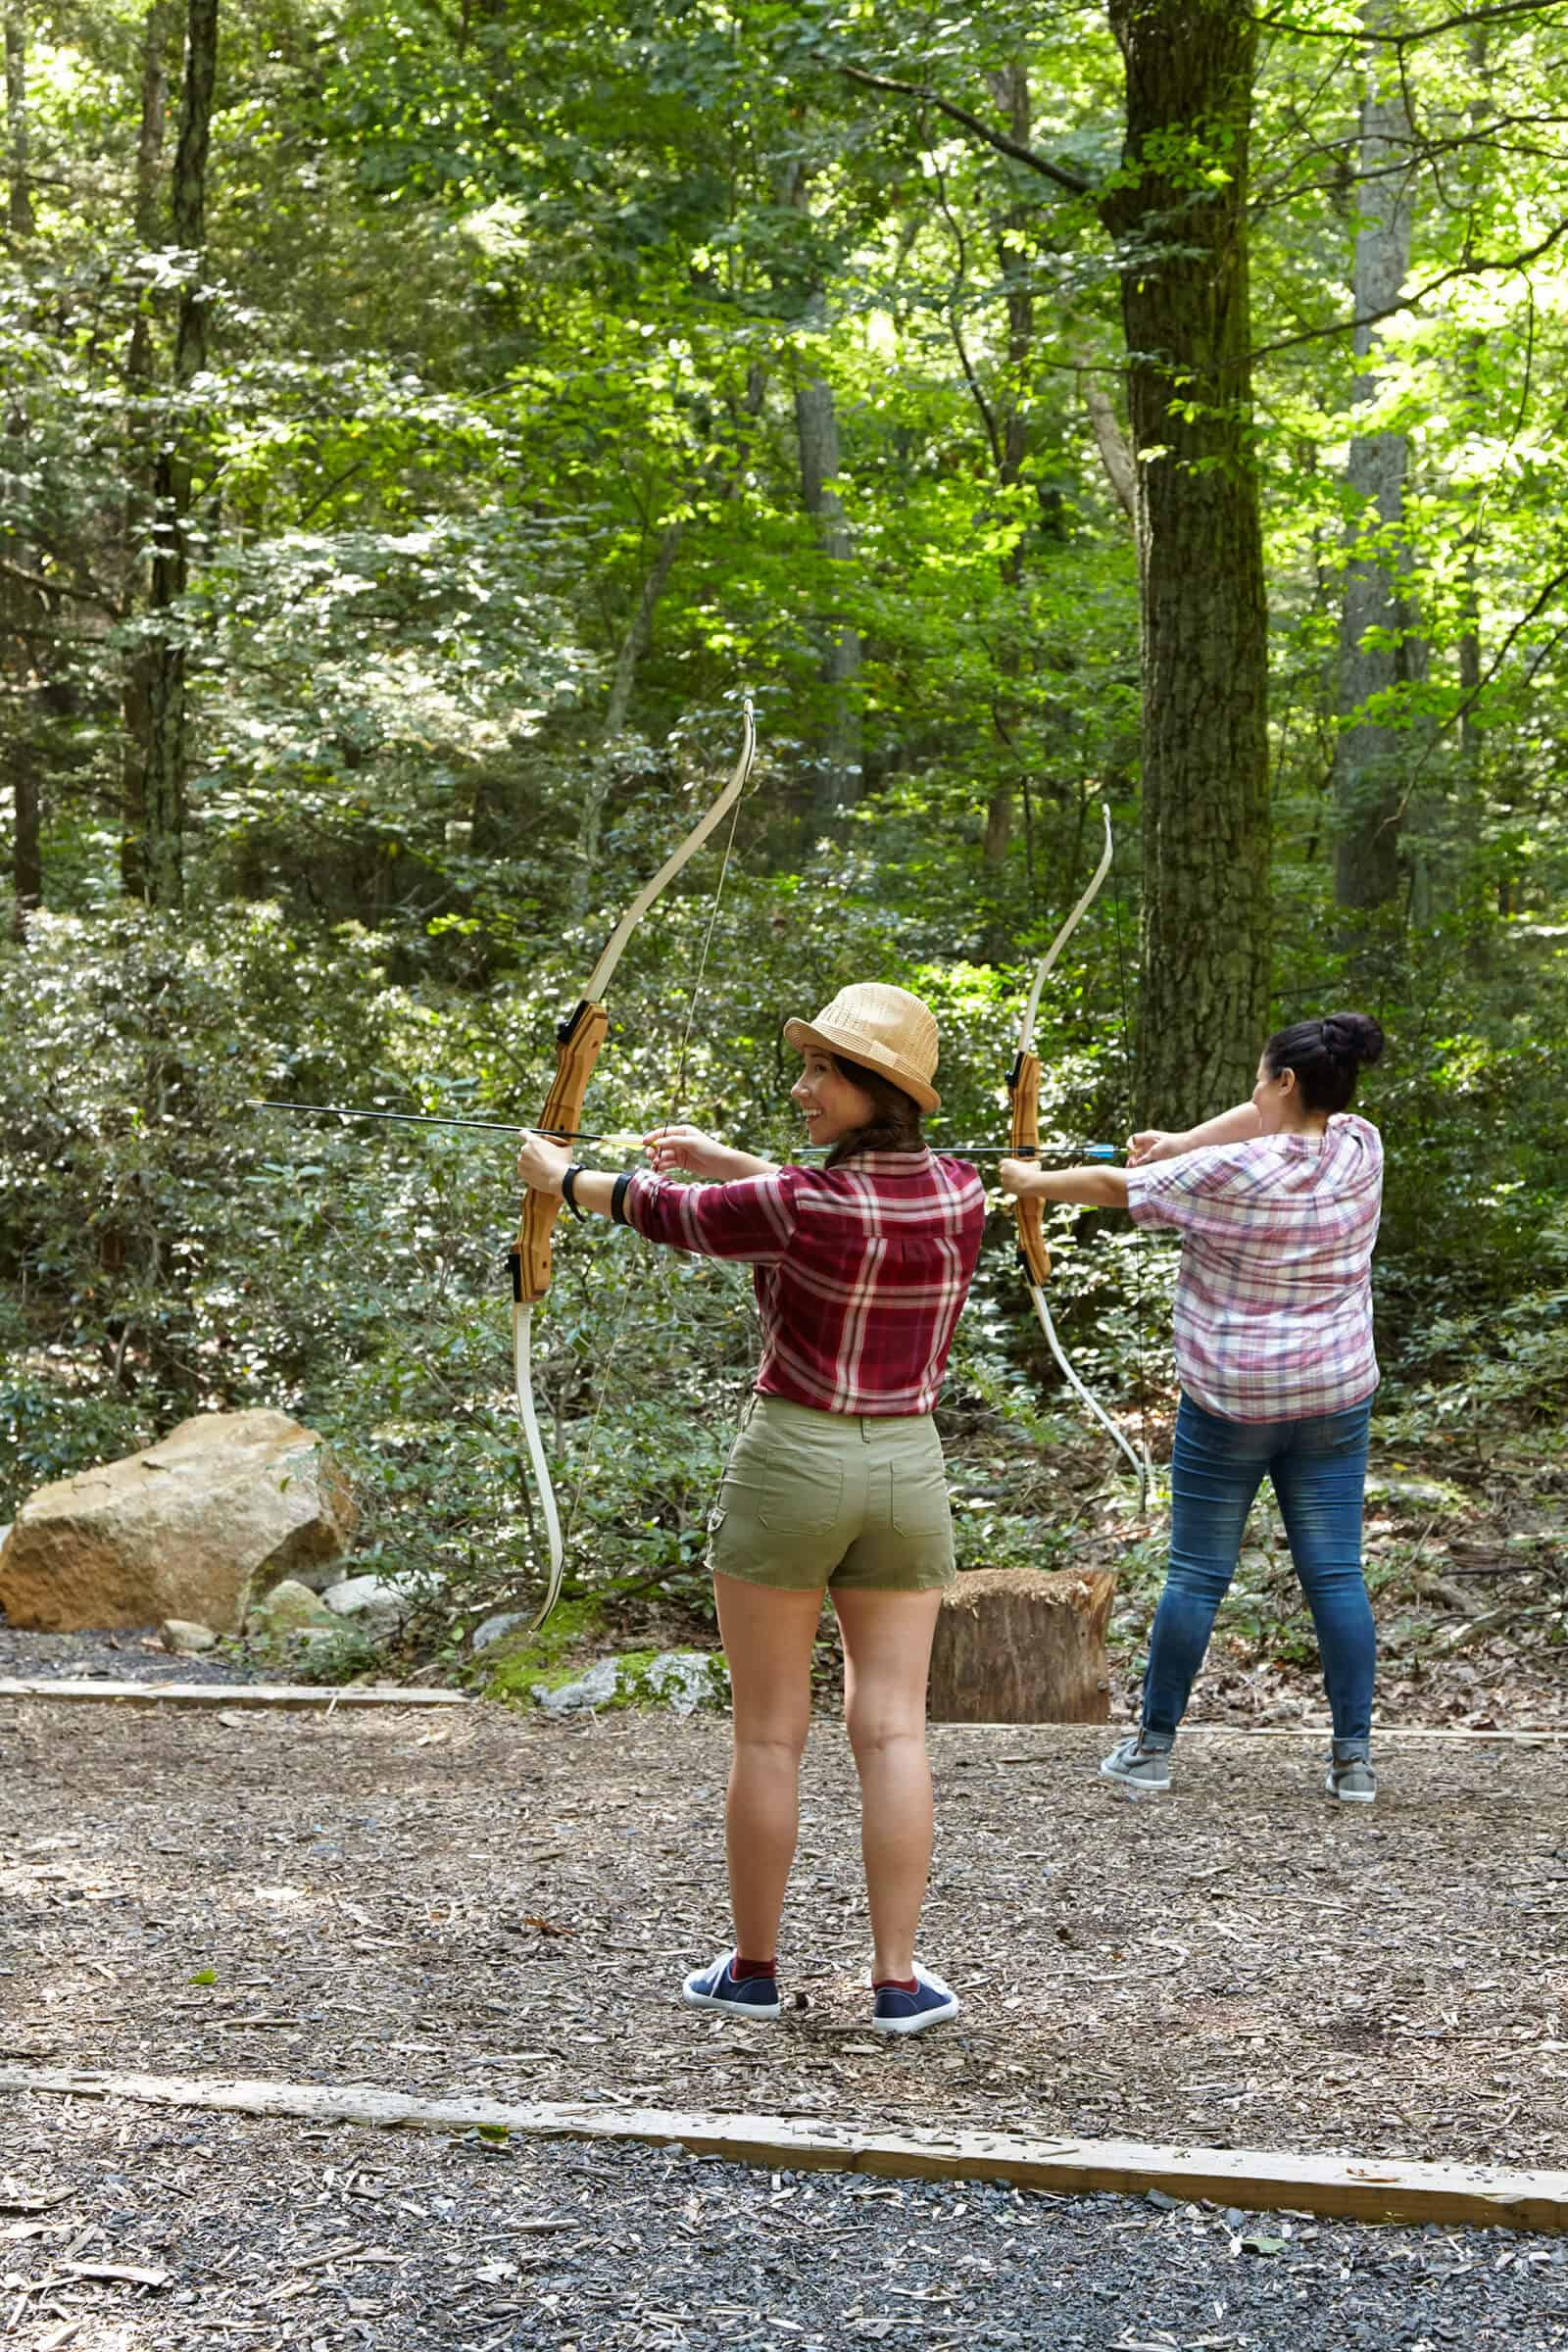 mohonk mountain house archery - best wellness resorts and retreats in new york